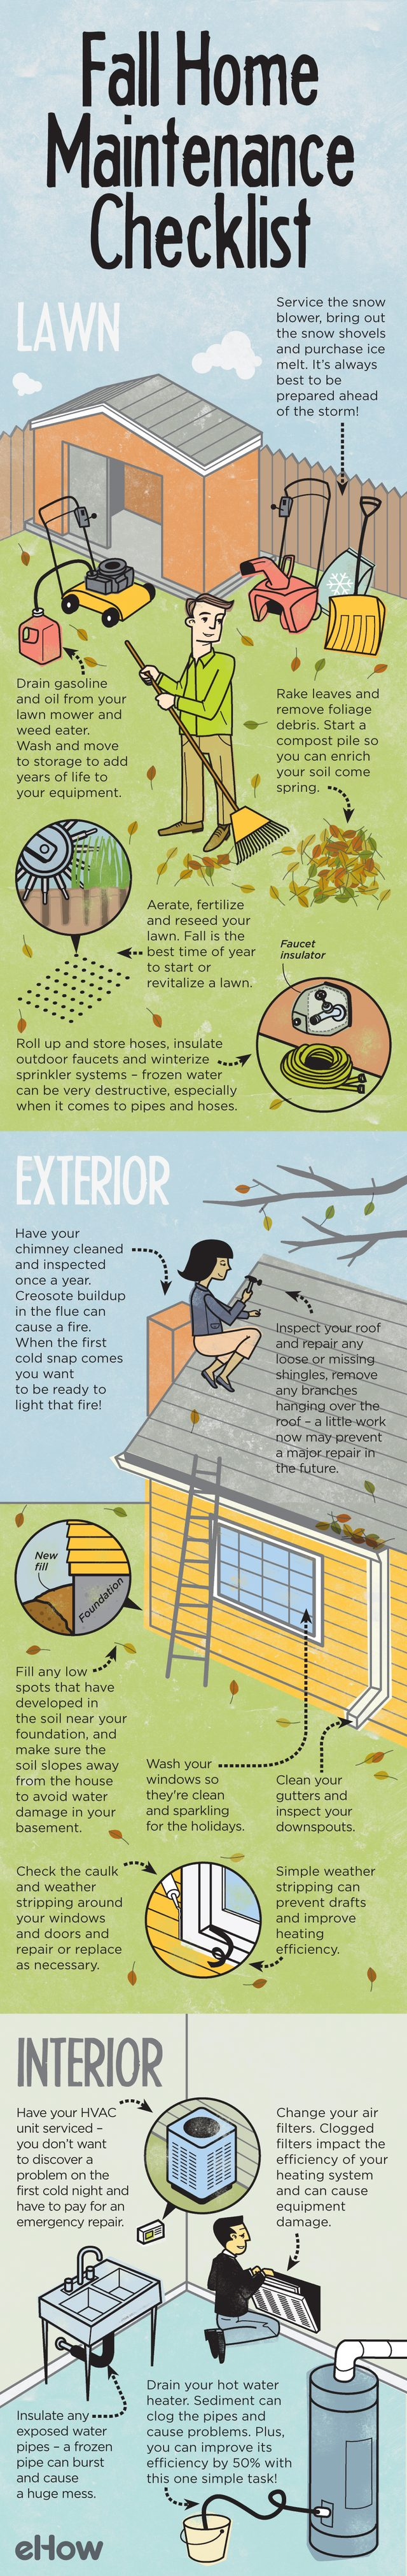 Transitioning your home for Fall - Greens Moving Solutions